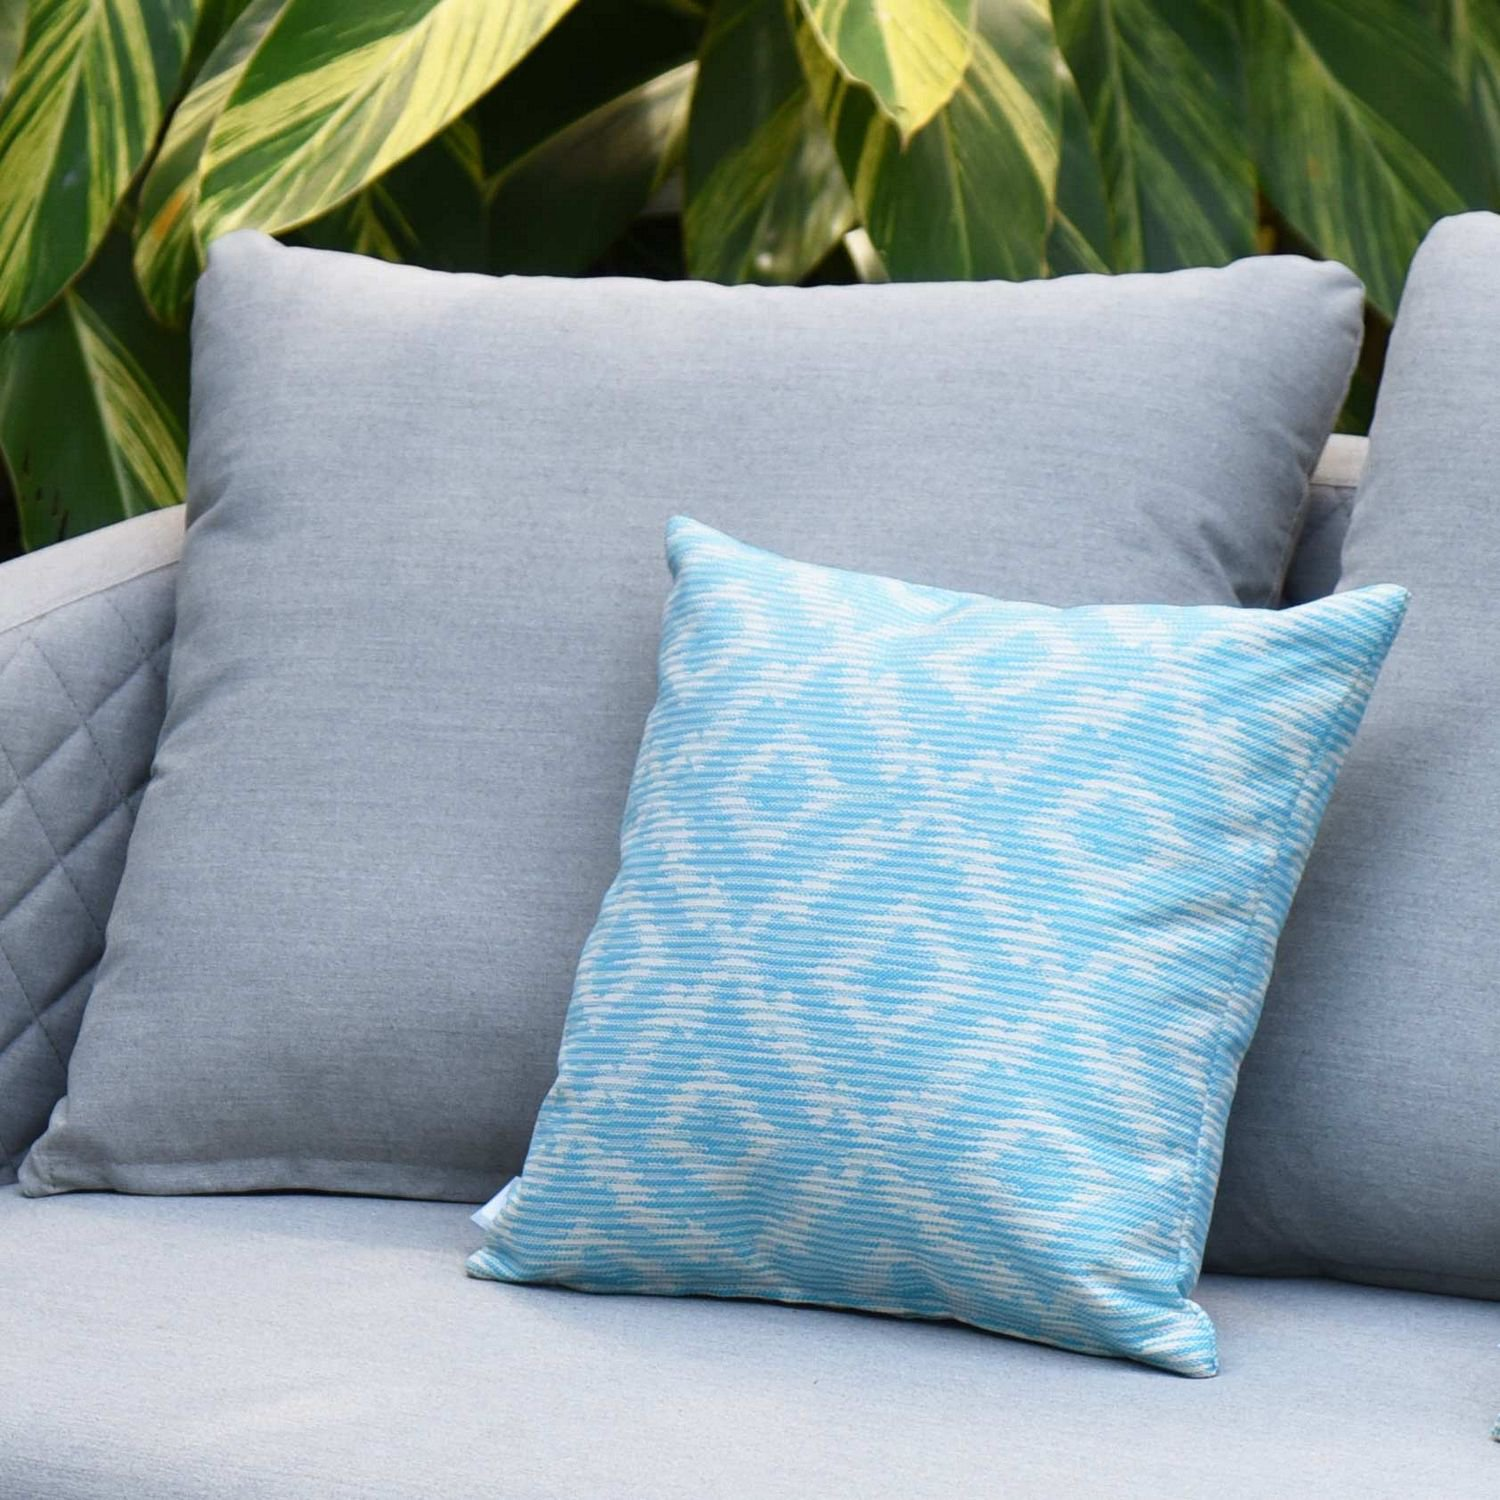 image-Maze Lounge Outdoor Fabric Scatter Cushion in Santorini Aqua Blue Pair